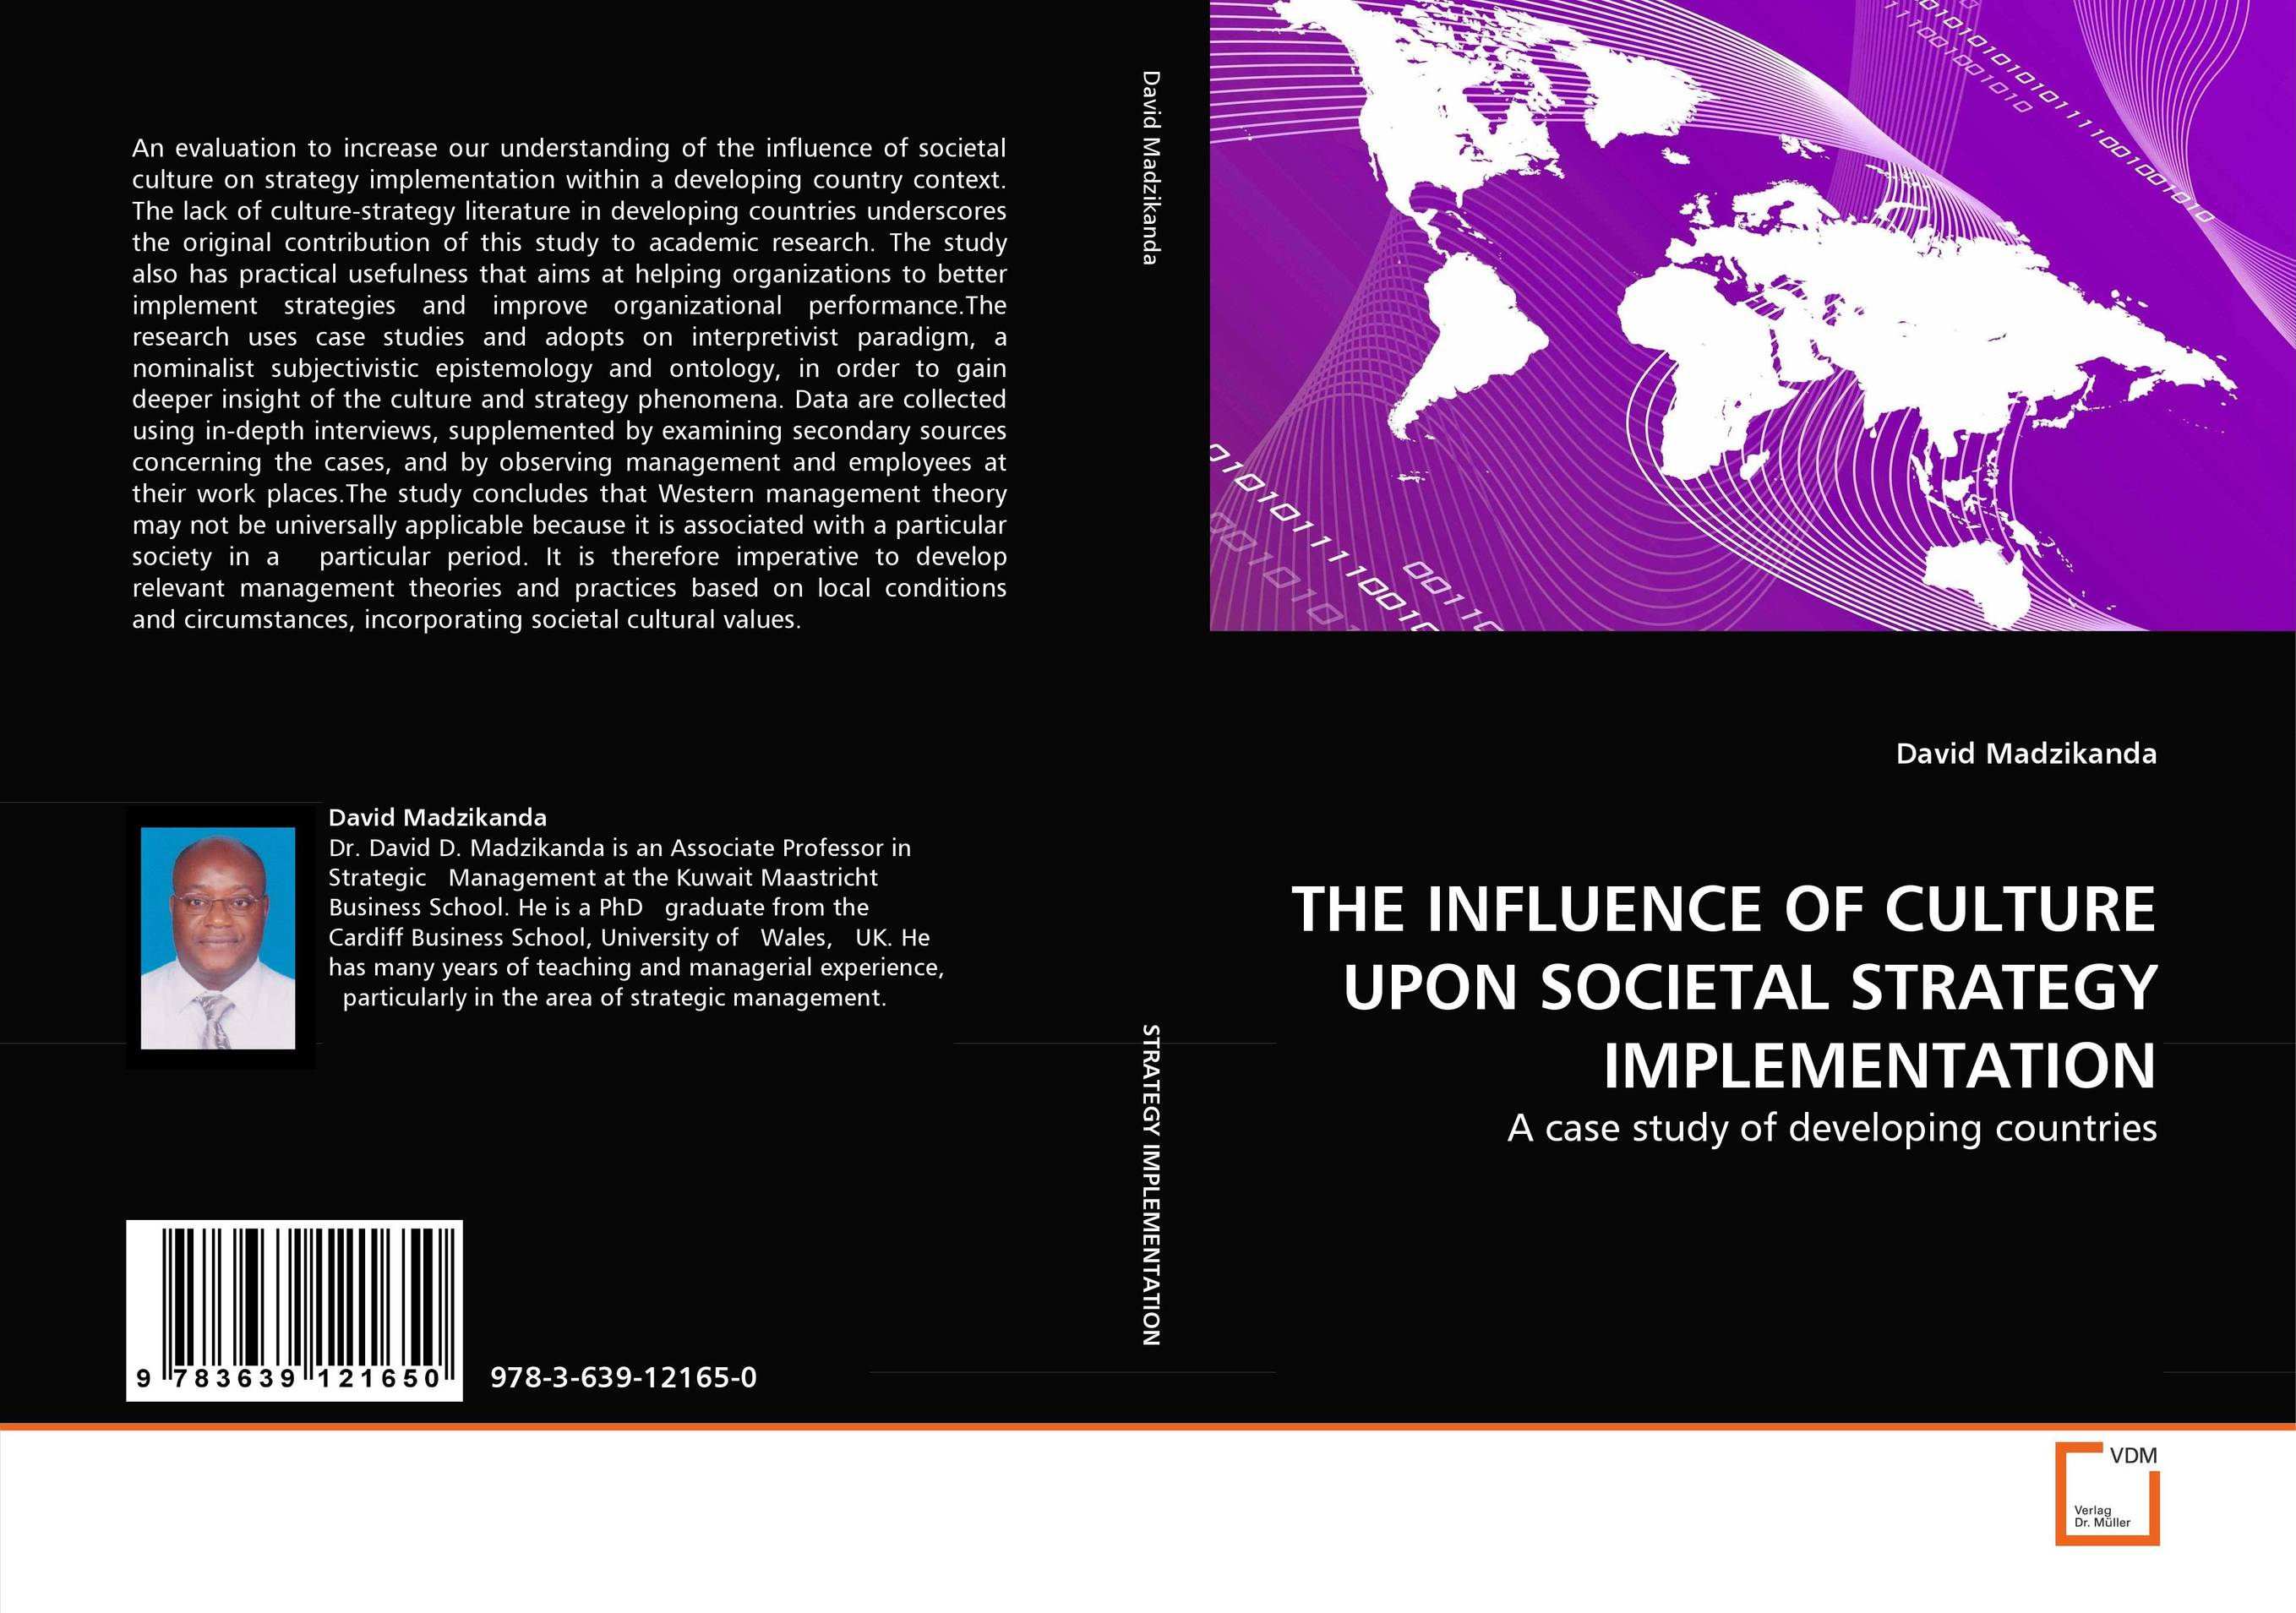 9783639121650 THE INFLUENCE OF CULTURE UPON SOCIETAL STRATEGY IMPLEMENTATION D